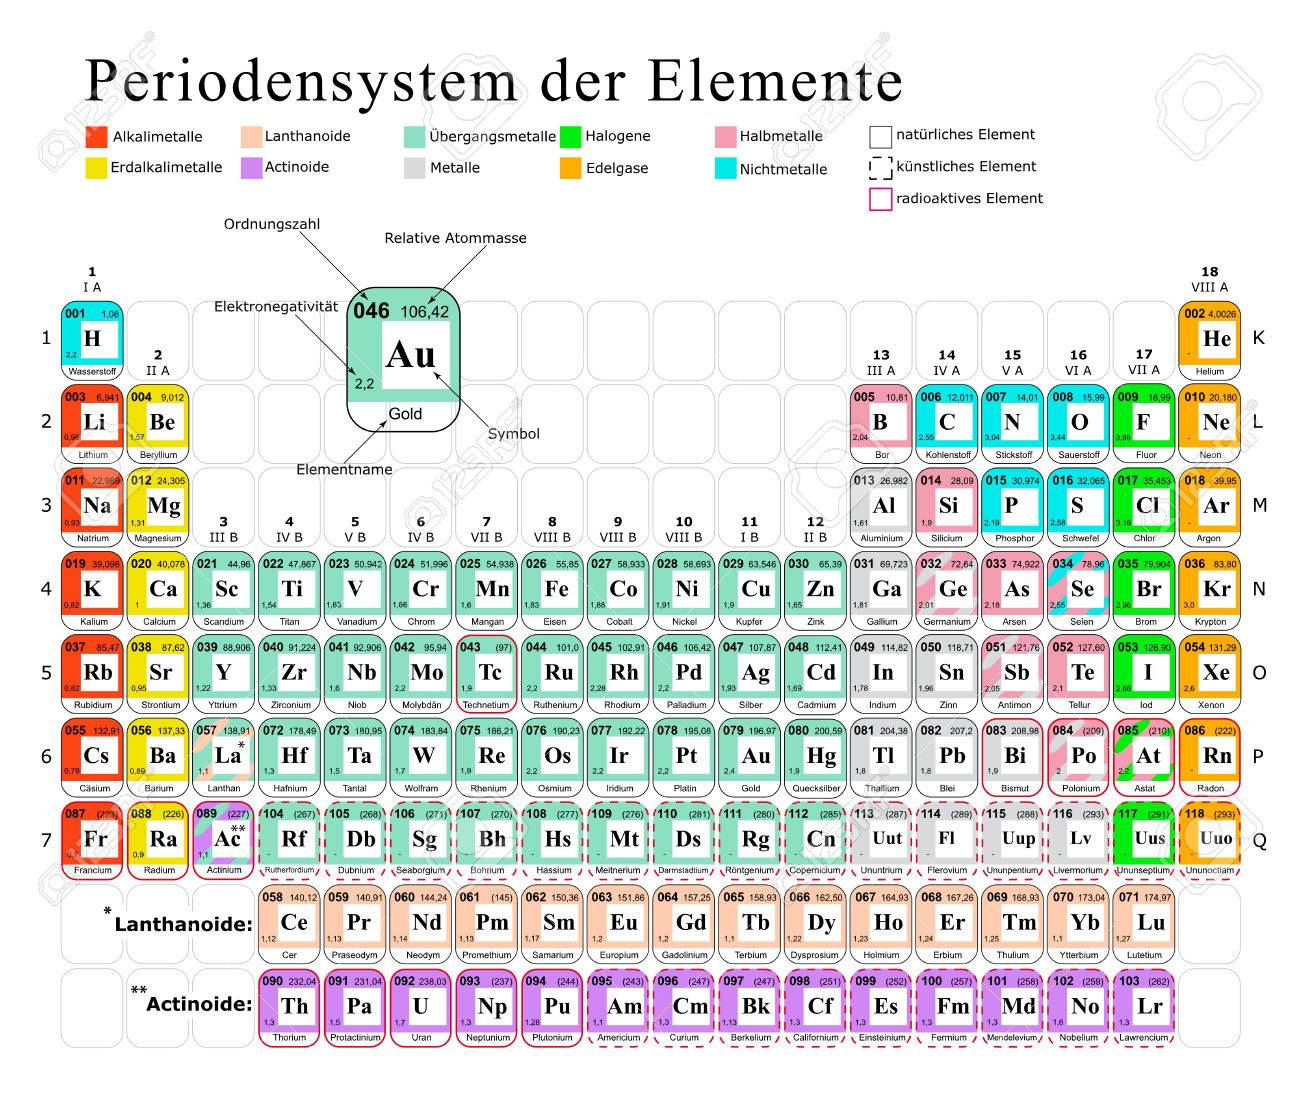 Colorful 2d periodic table of chemical elements wallpaper learning colorful 2d periodic table of chemical elements wallpaper learning and studying in german language urtaz Gallery